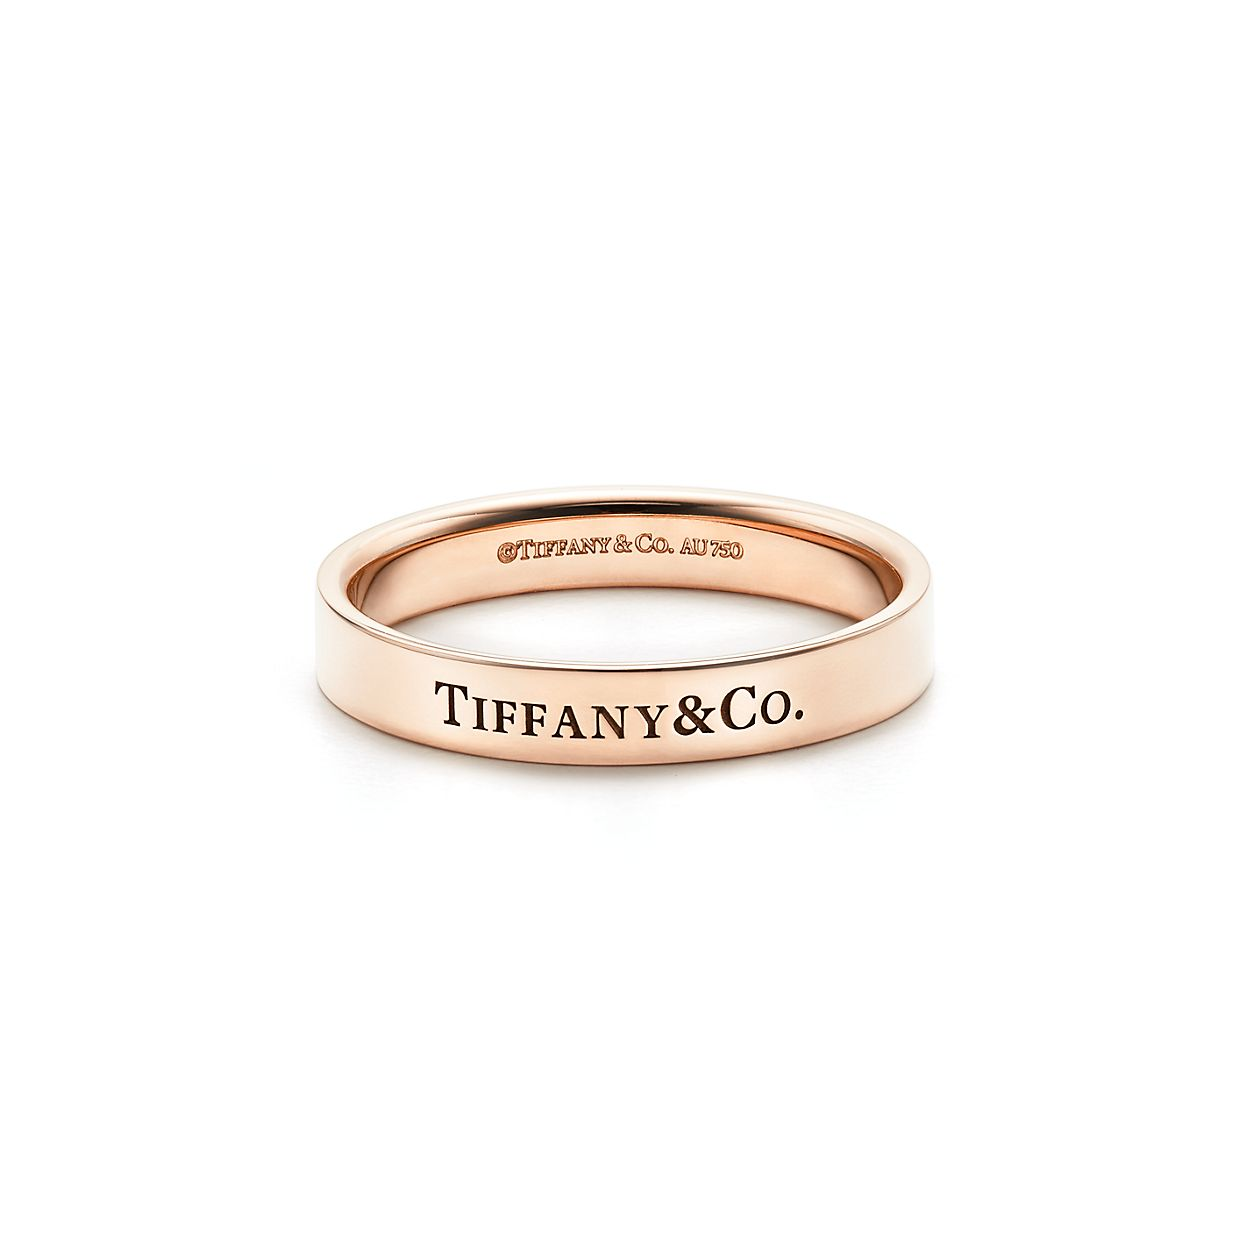 Tiffany & Co band ring in 18k rose gold with diamonds, 4 mm - Size 4 1/2 Tiffany & Co.